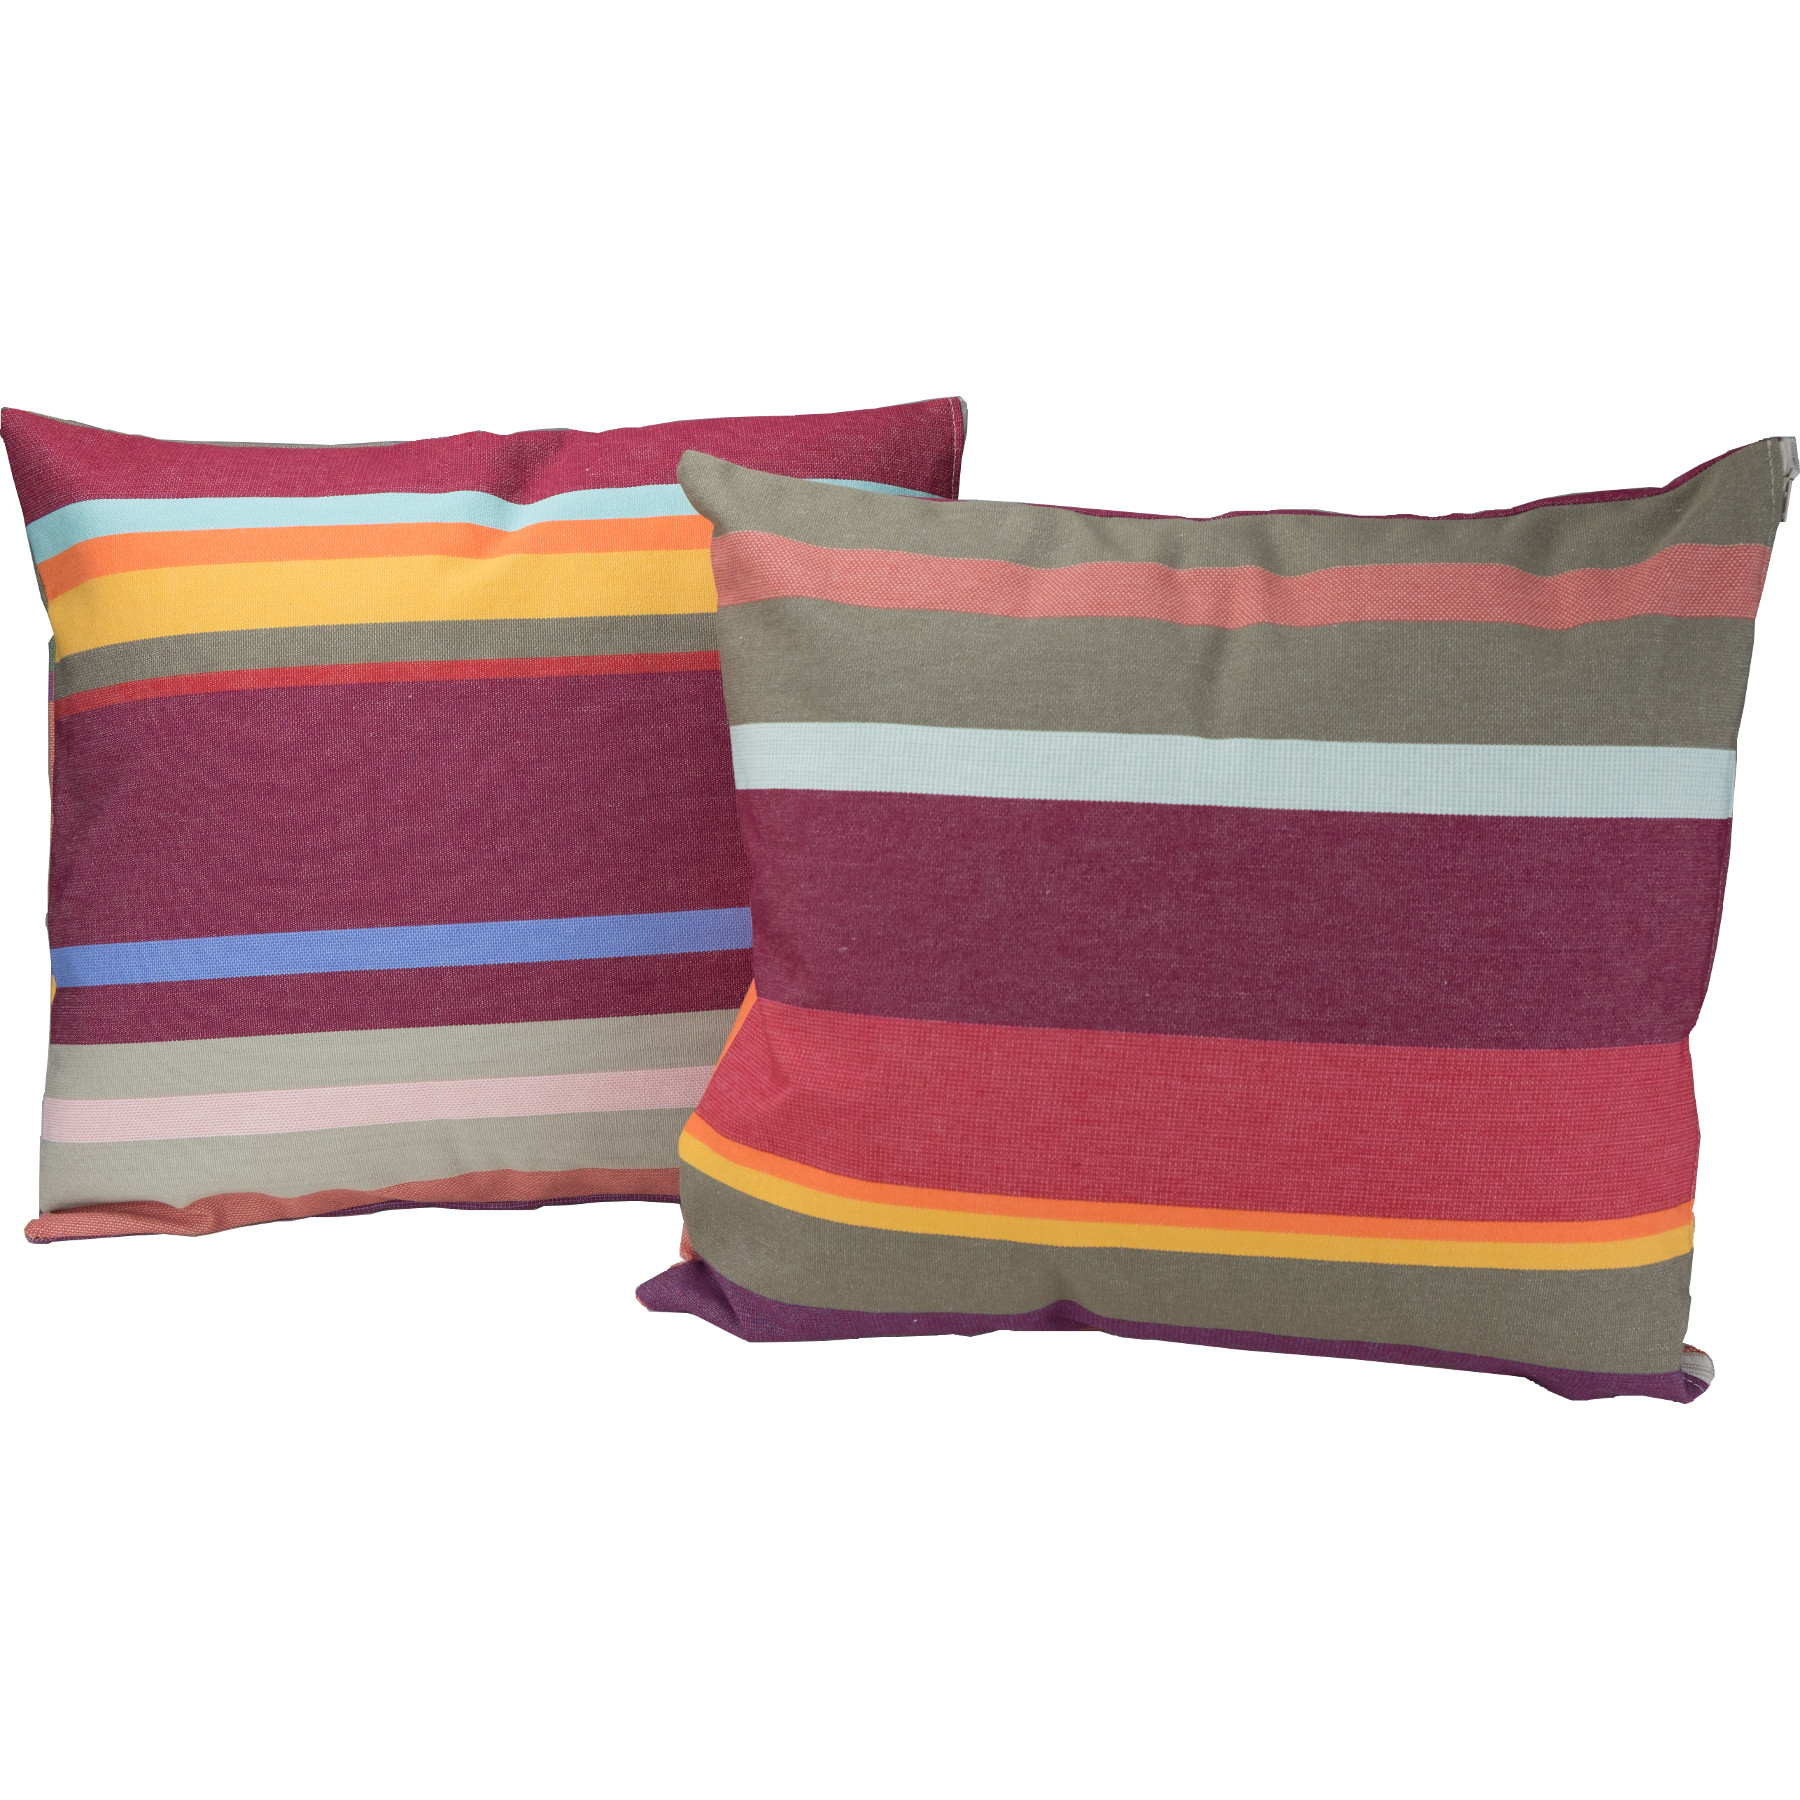 Cushion covers COLLIOURE (Set of 2)